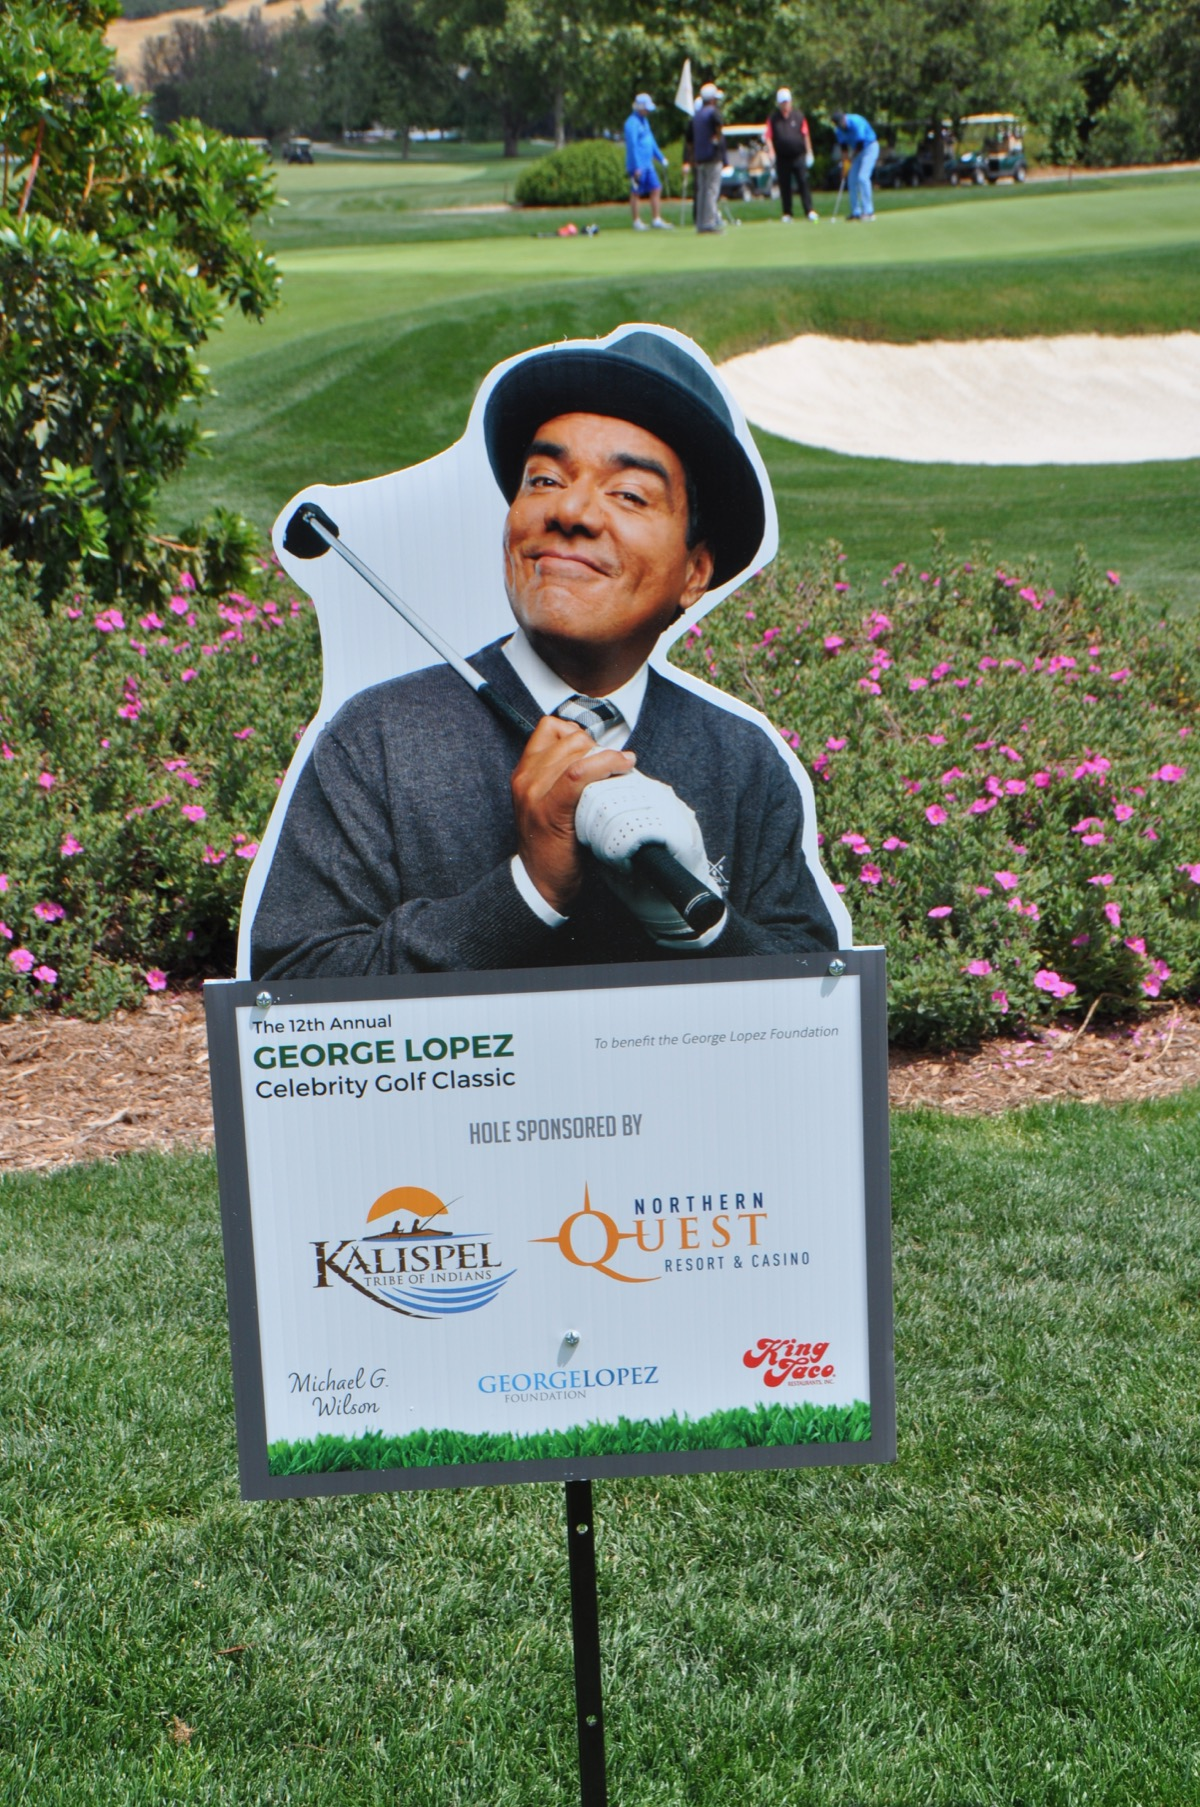 12th Annual George Lopez Celebrity Golf Classic Photos - 109.jpg